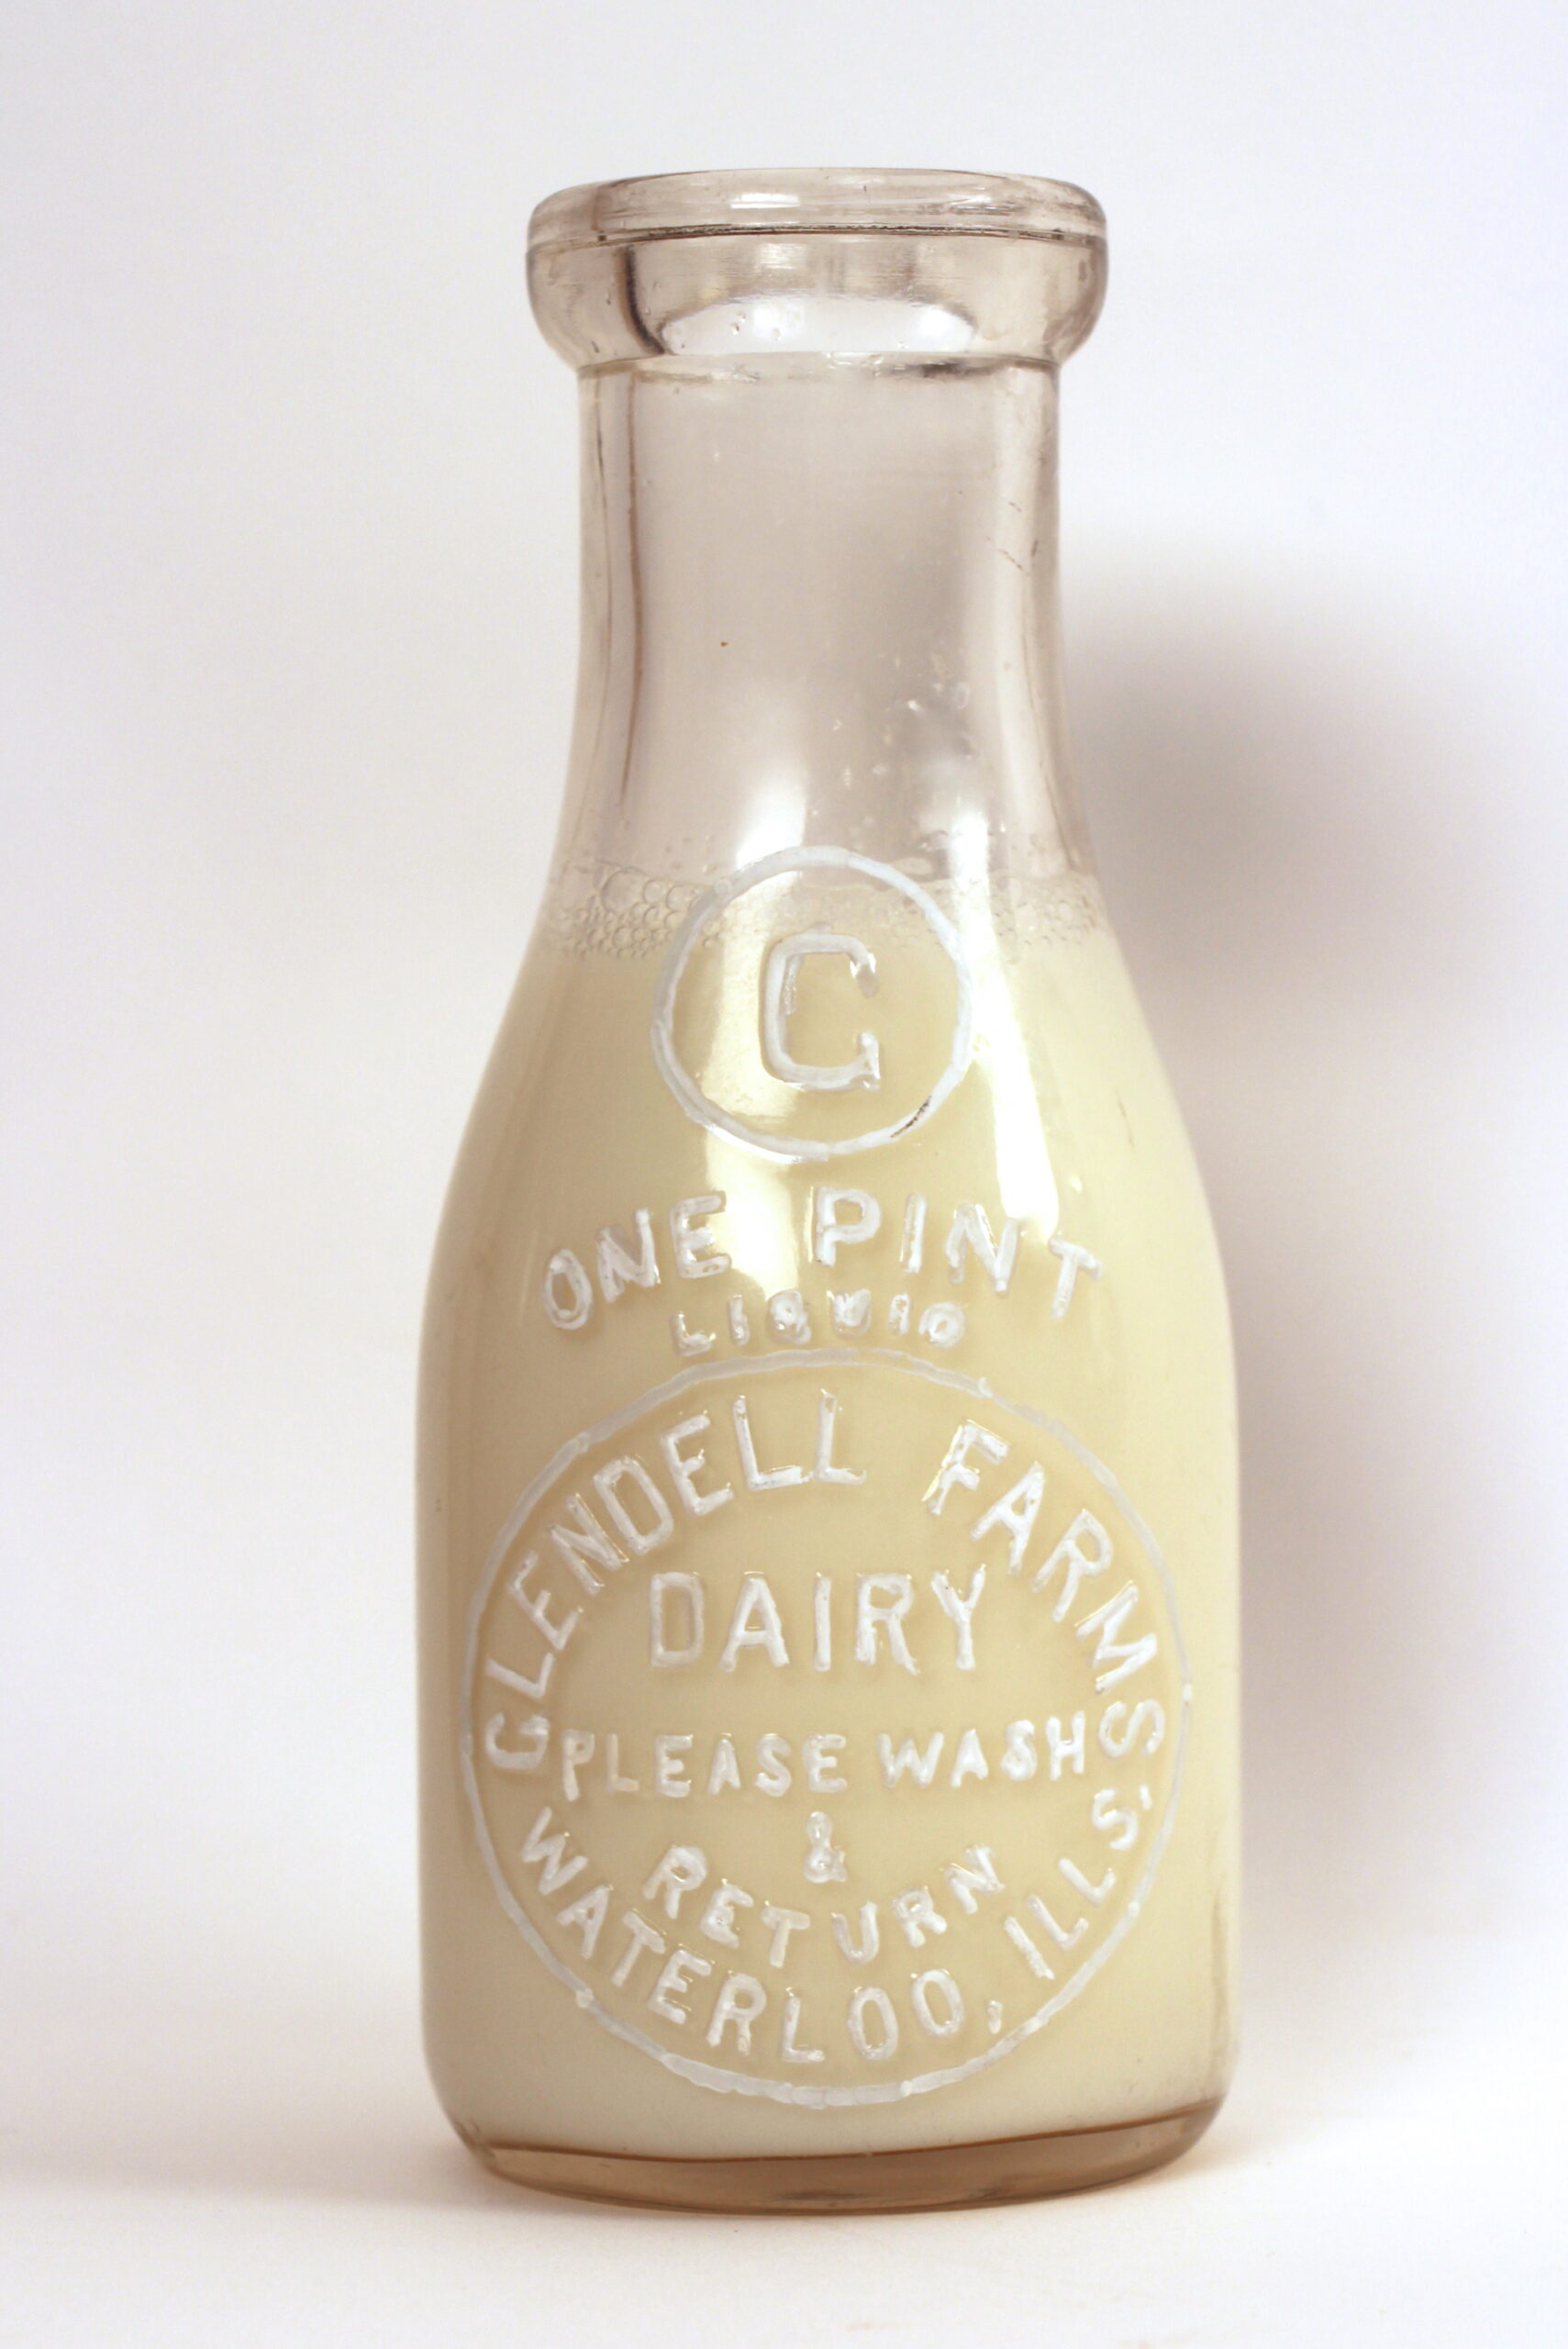 Glendell Farm Dairy Milk Bottle 1930